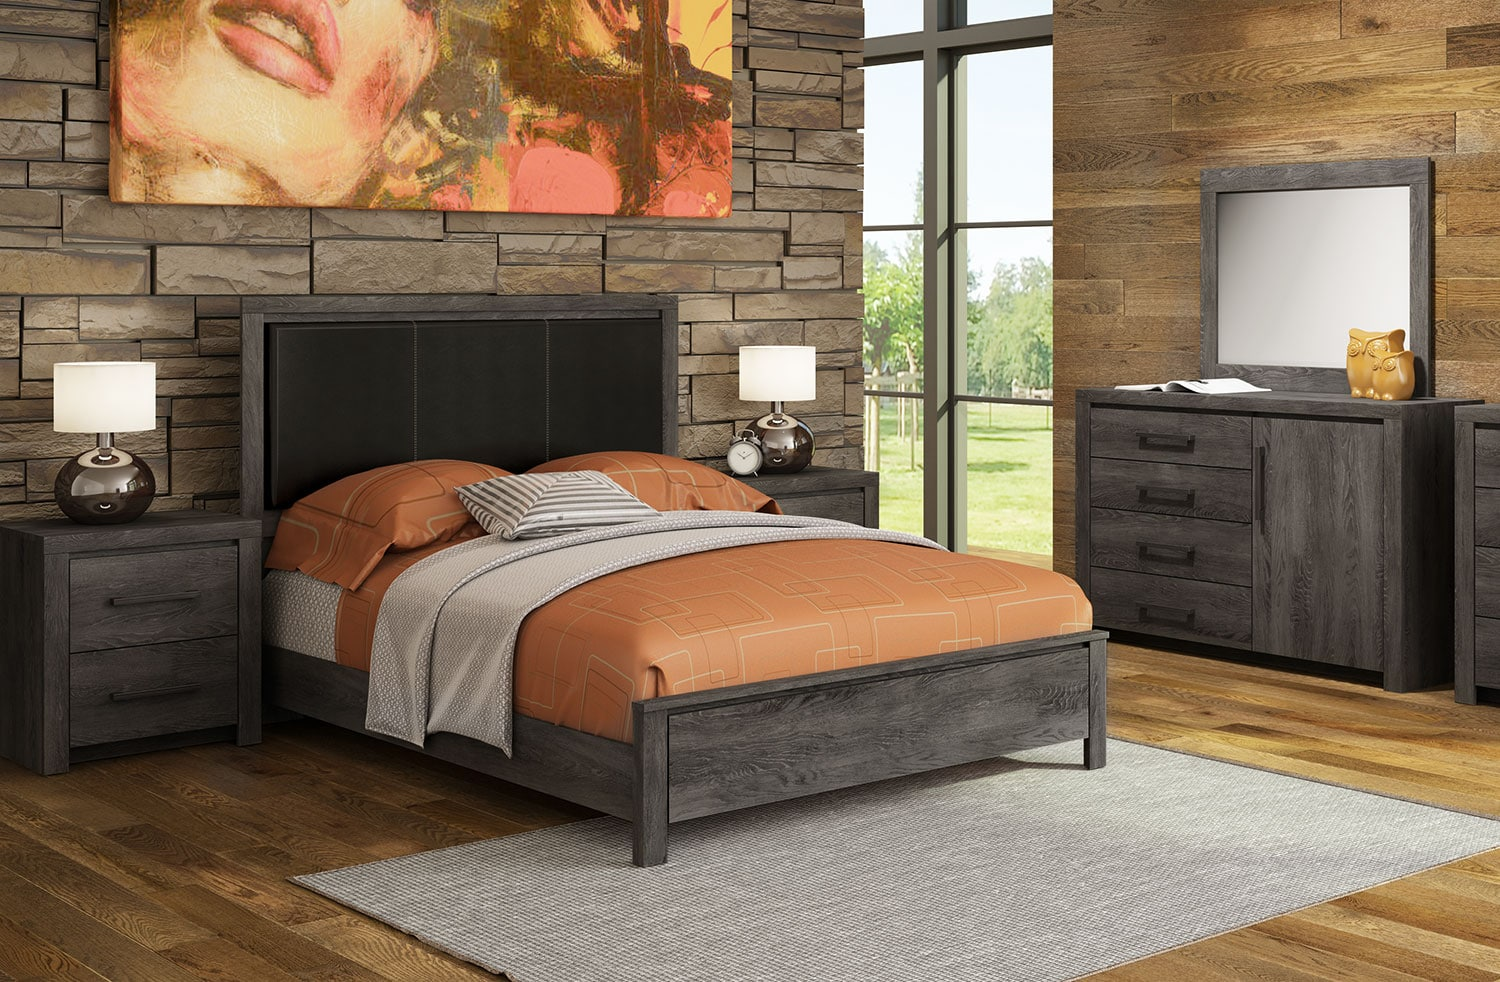 Driftwood 5-Piece Queen Bedroom Set - Rustic Brown